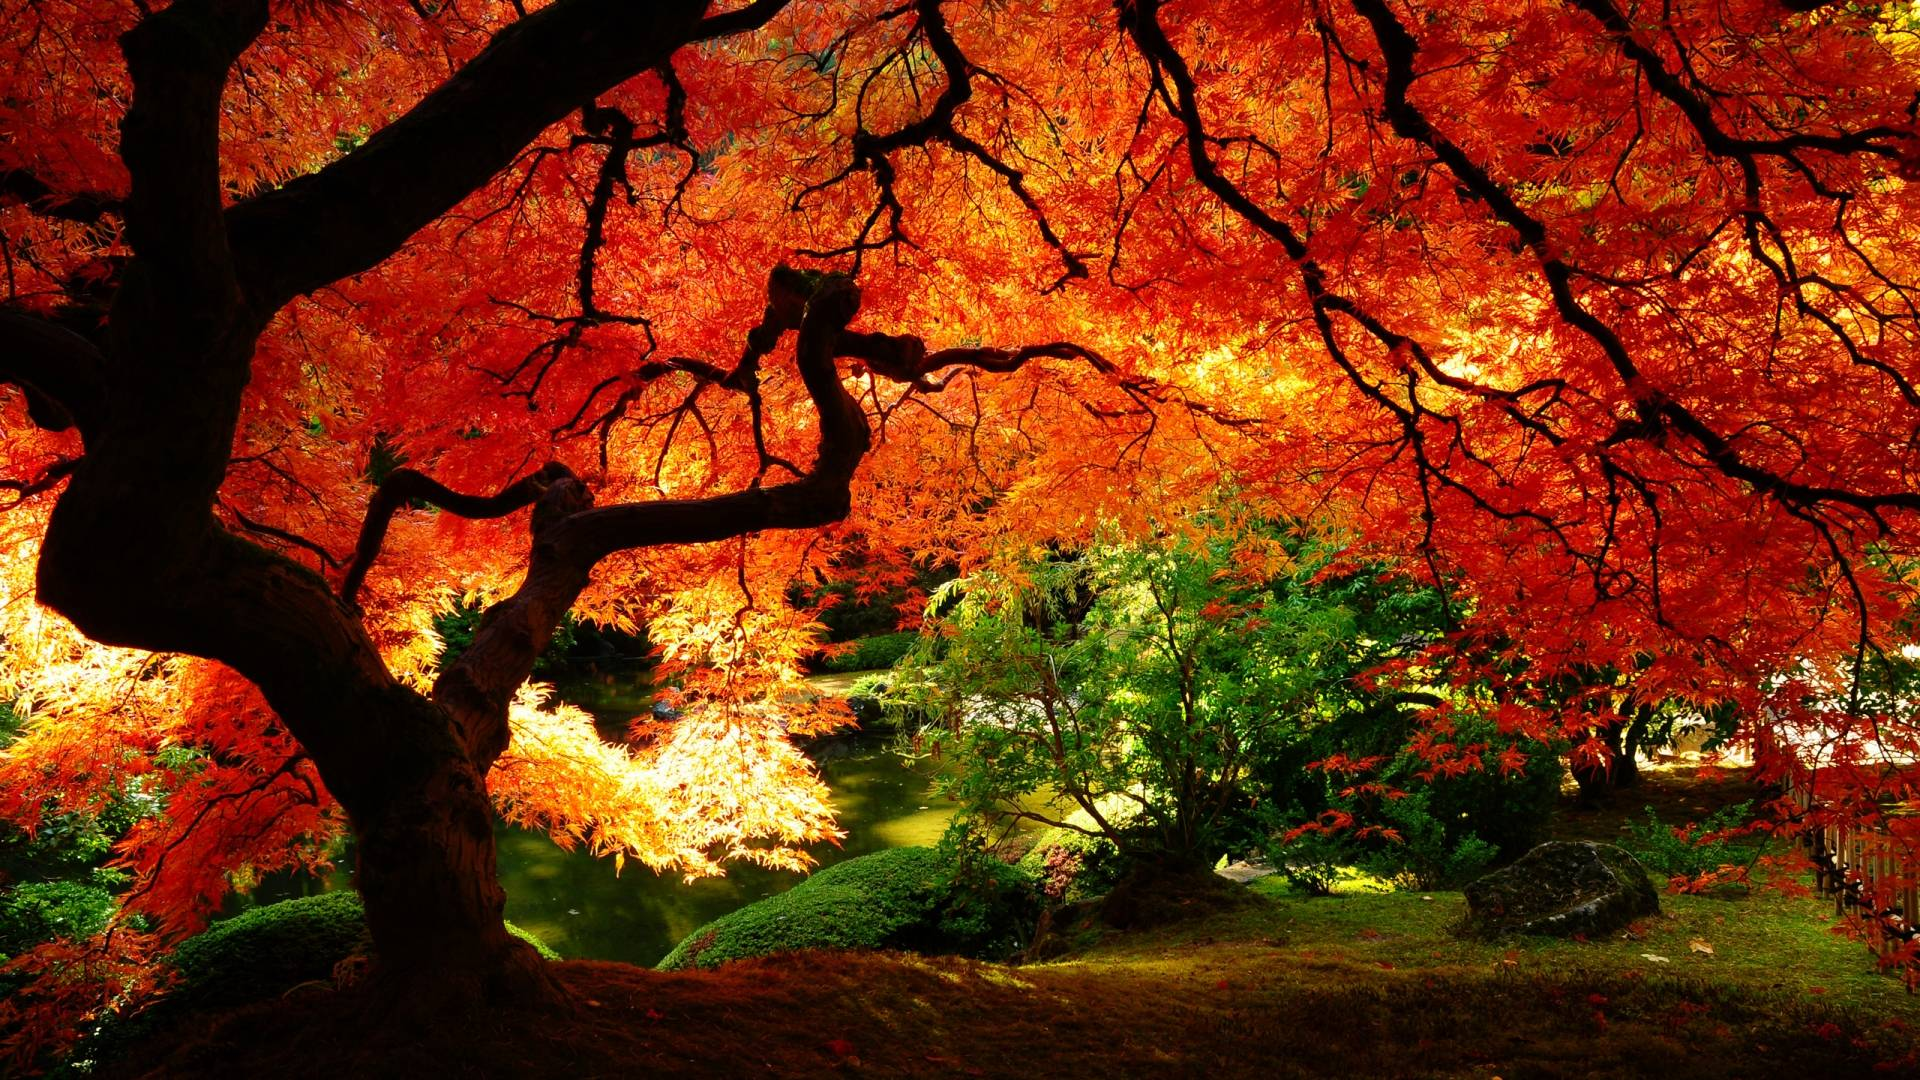 Fall Computer Wallpapers   Top Fall Computer Backgrounds 1920x1080